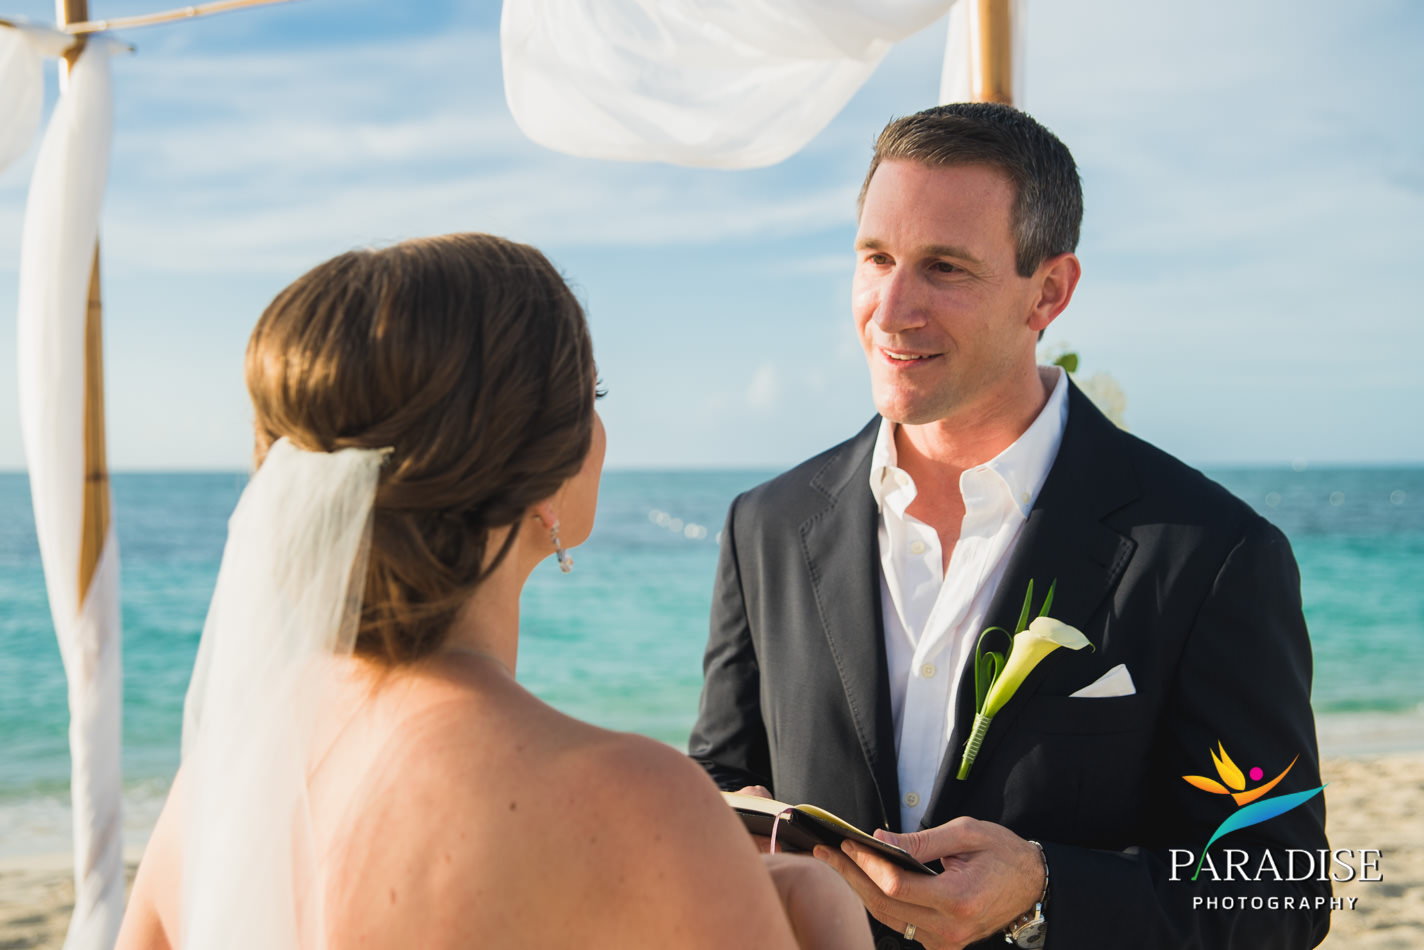 014-turks-and-caicos-destination-wedding-beach-caribbean-photography-photographer-pic-pictures-bride-groom-grace-bay-gansevoort-elopement